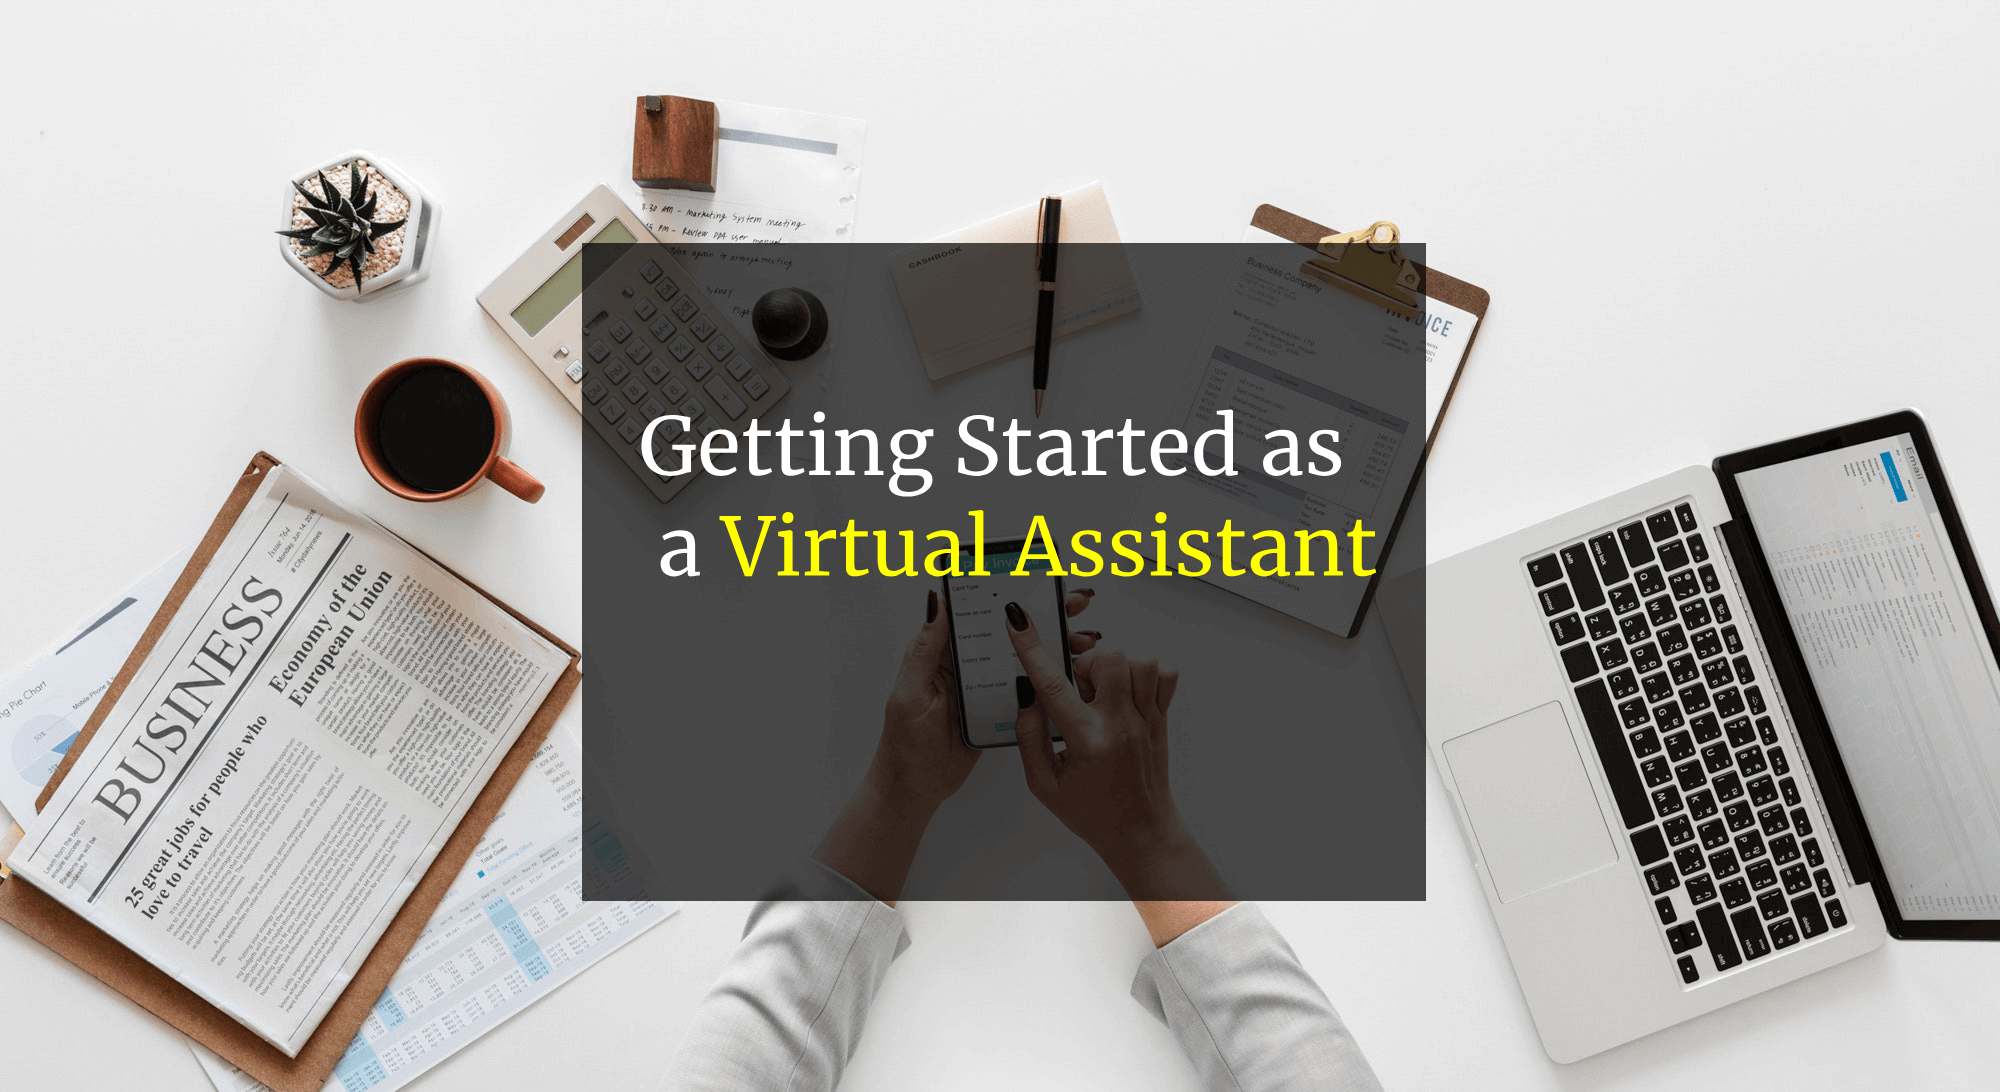 How to Get Started as a Virtual Assistant